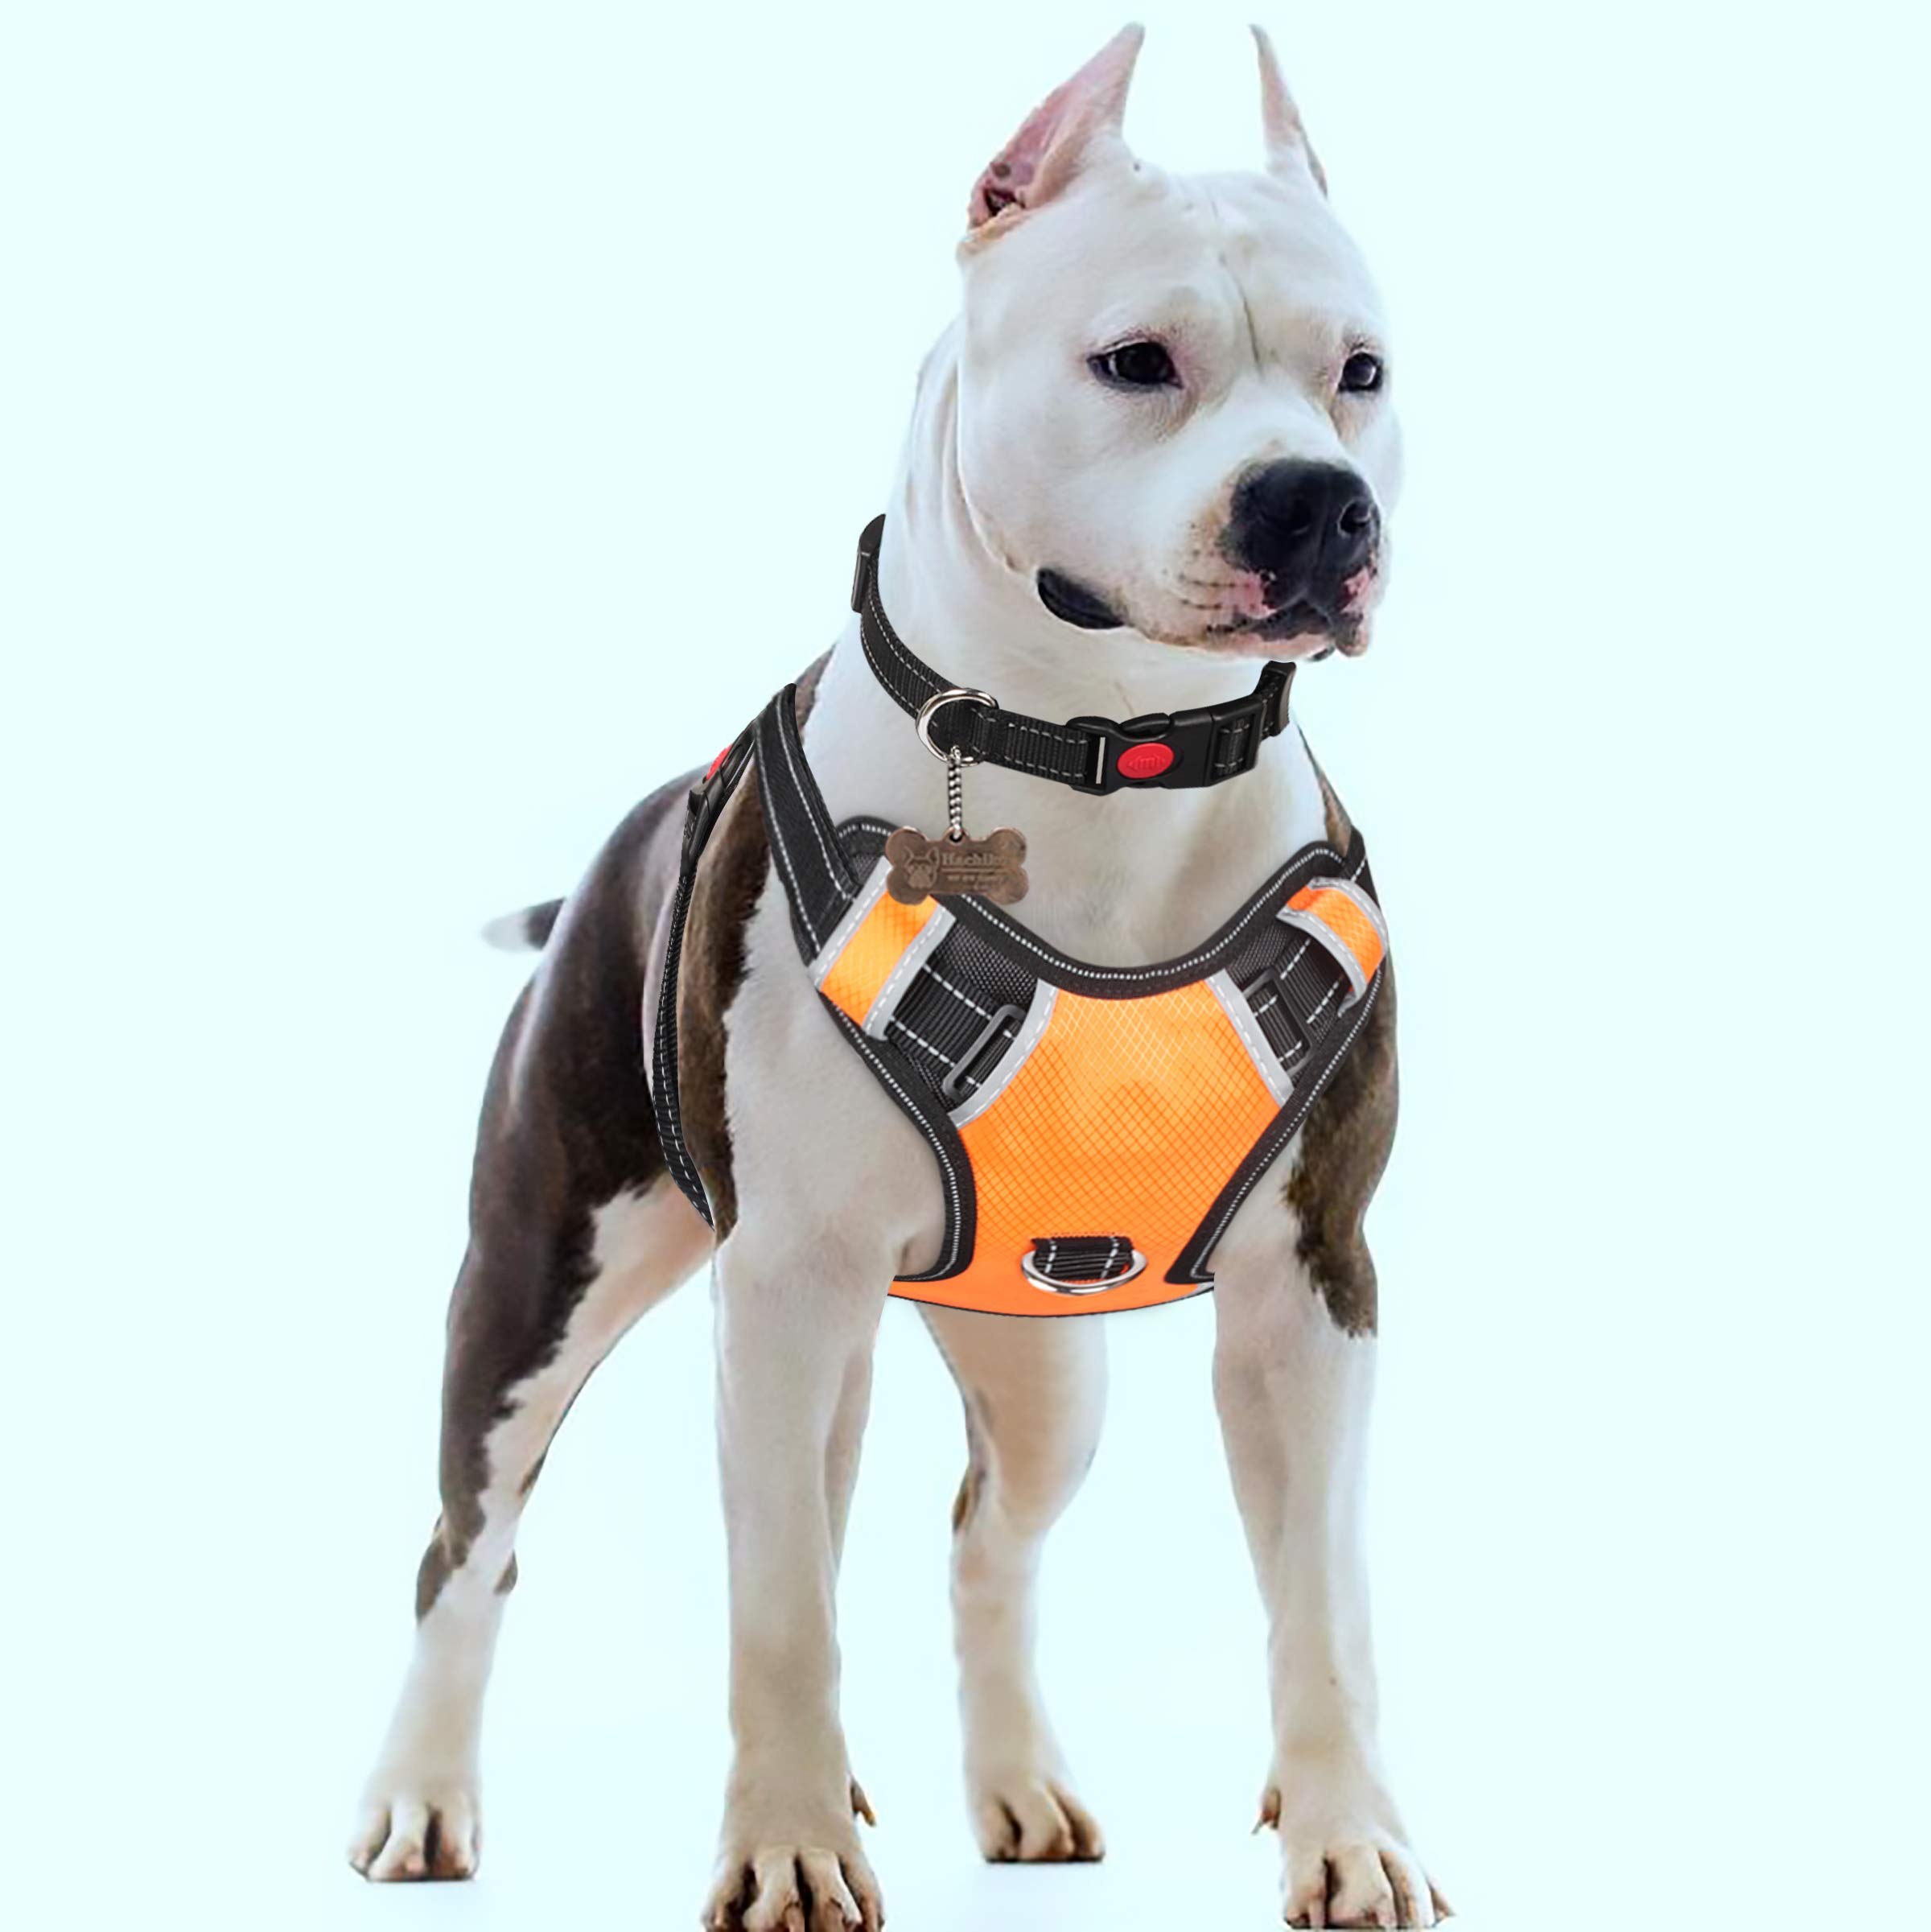 Babyltrl XL Dog Harness for Large Dogs No-Pull Adjustable Pet Reflective Oxford Soft Vest for Big Dogs Easy Control Harness (Dog Collar Included)